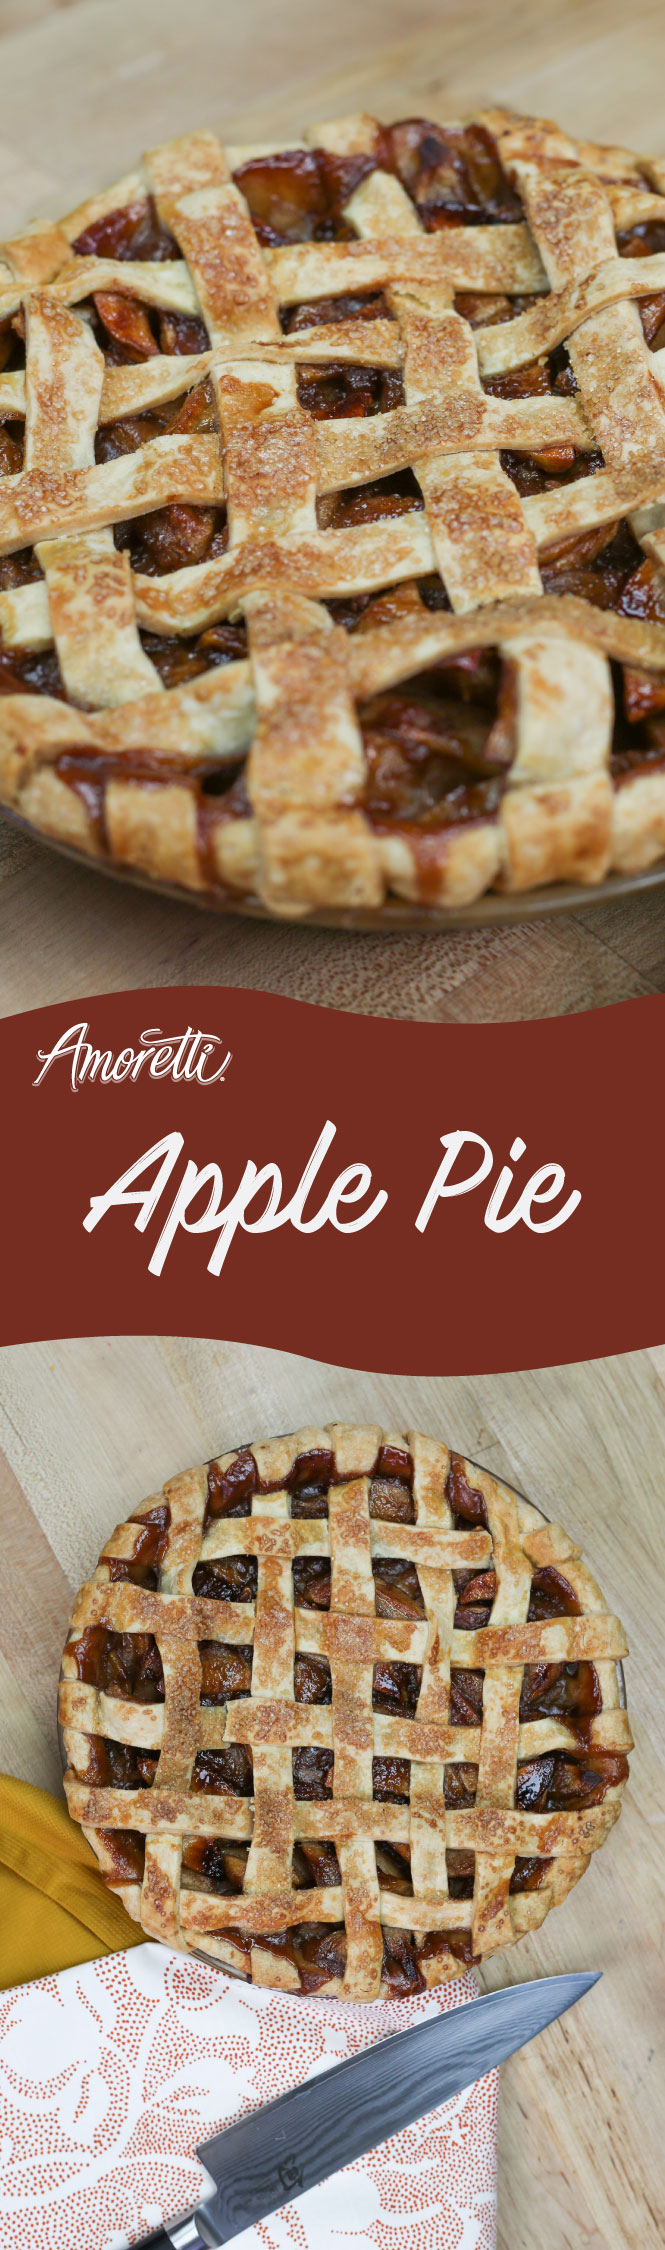 Amoretti Apple Pie with Lattice Crust: Get into the spirit of the holidays and make this delicious apple pie with a flaky crust!